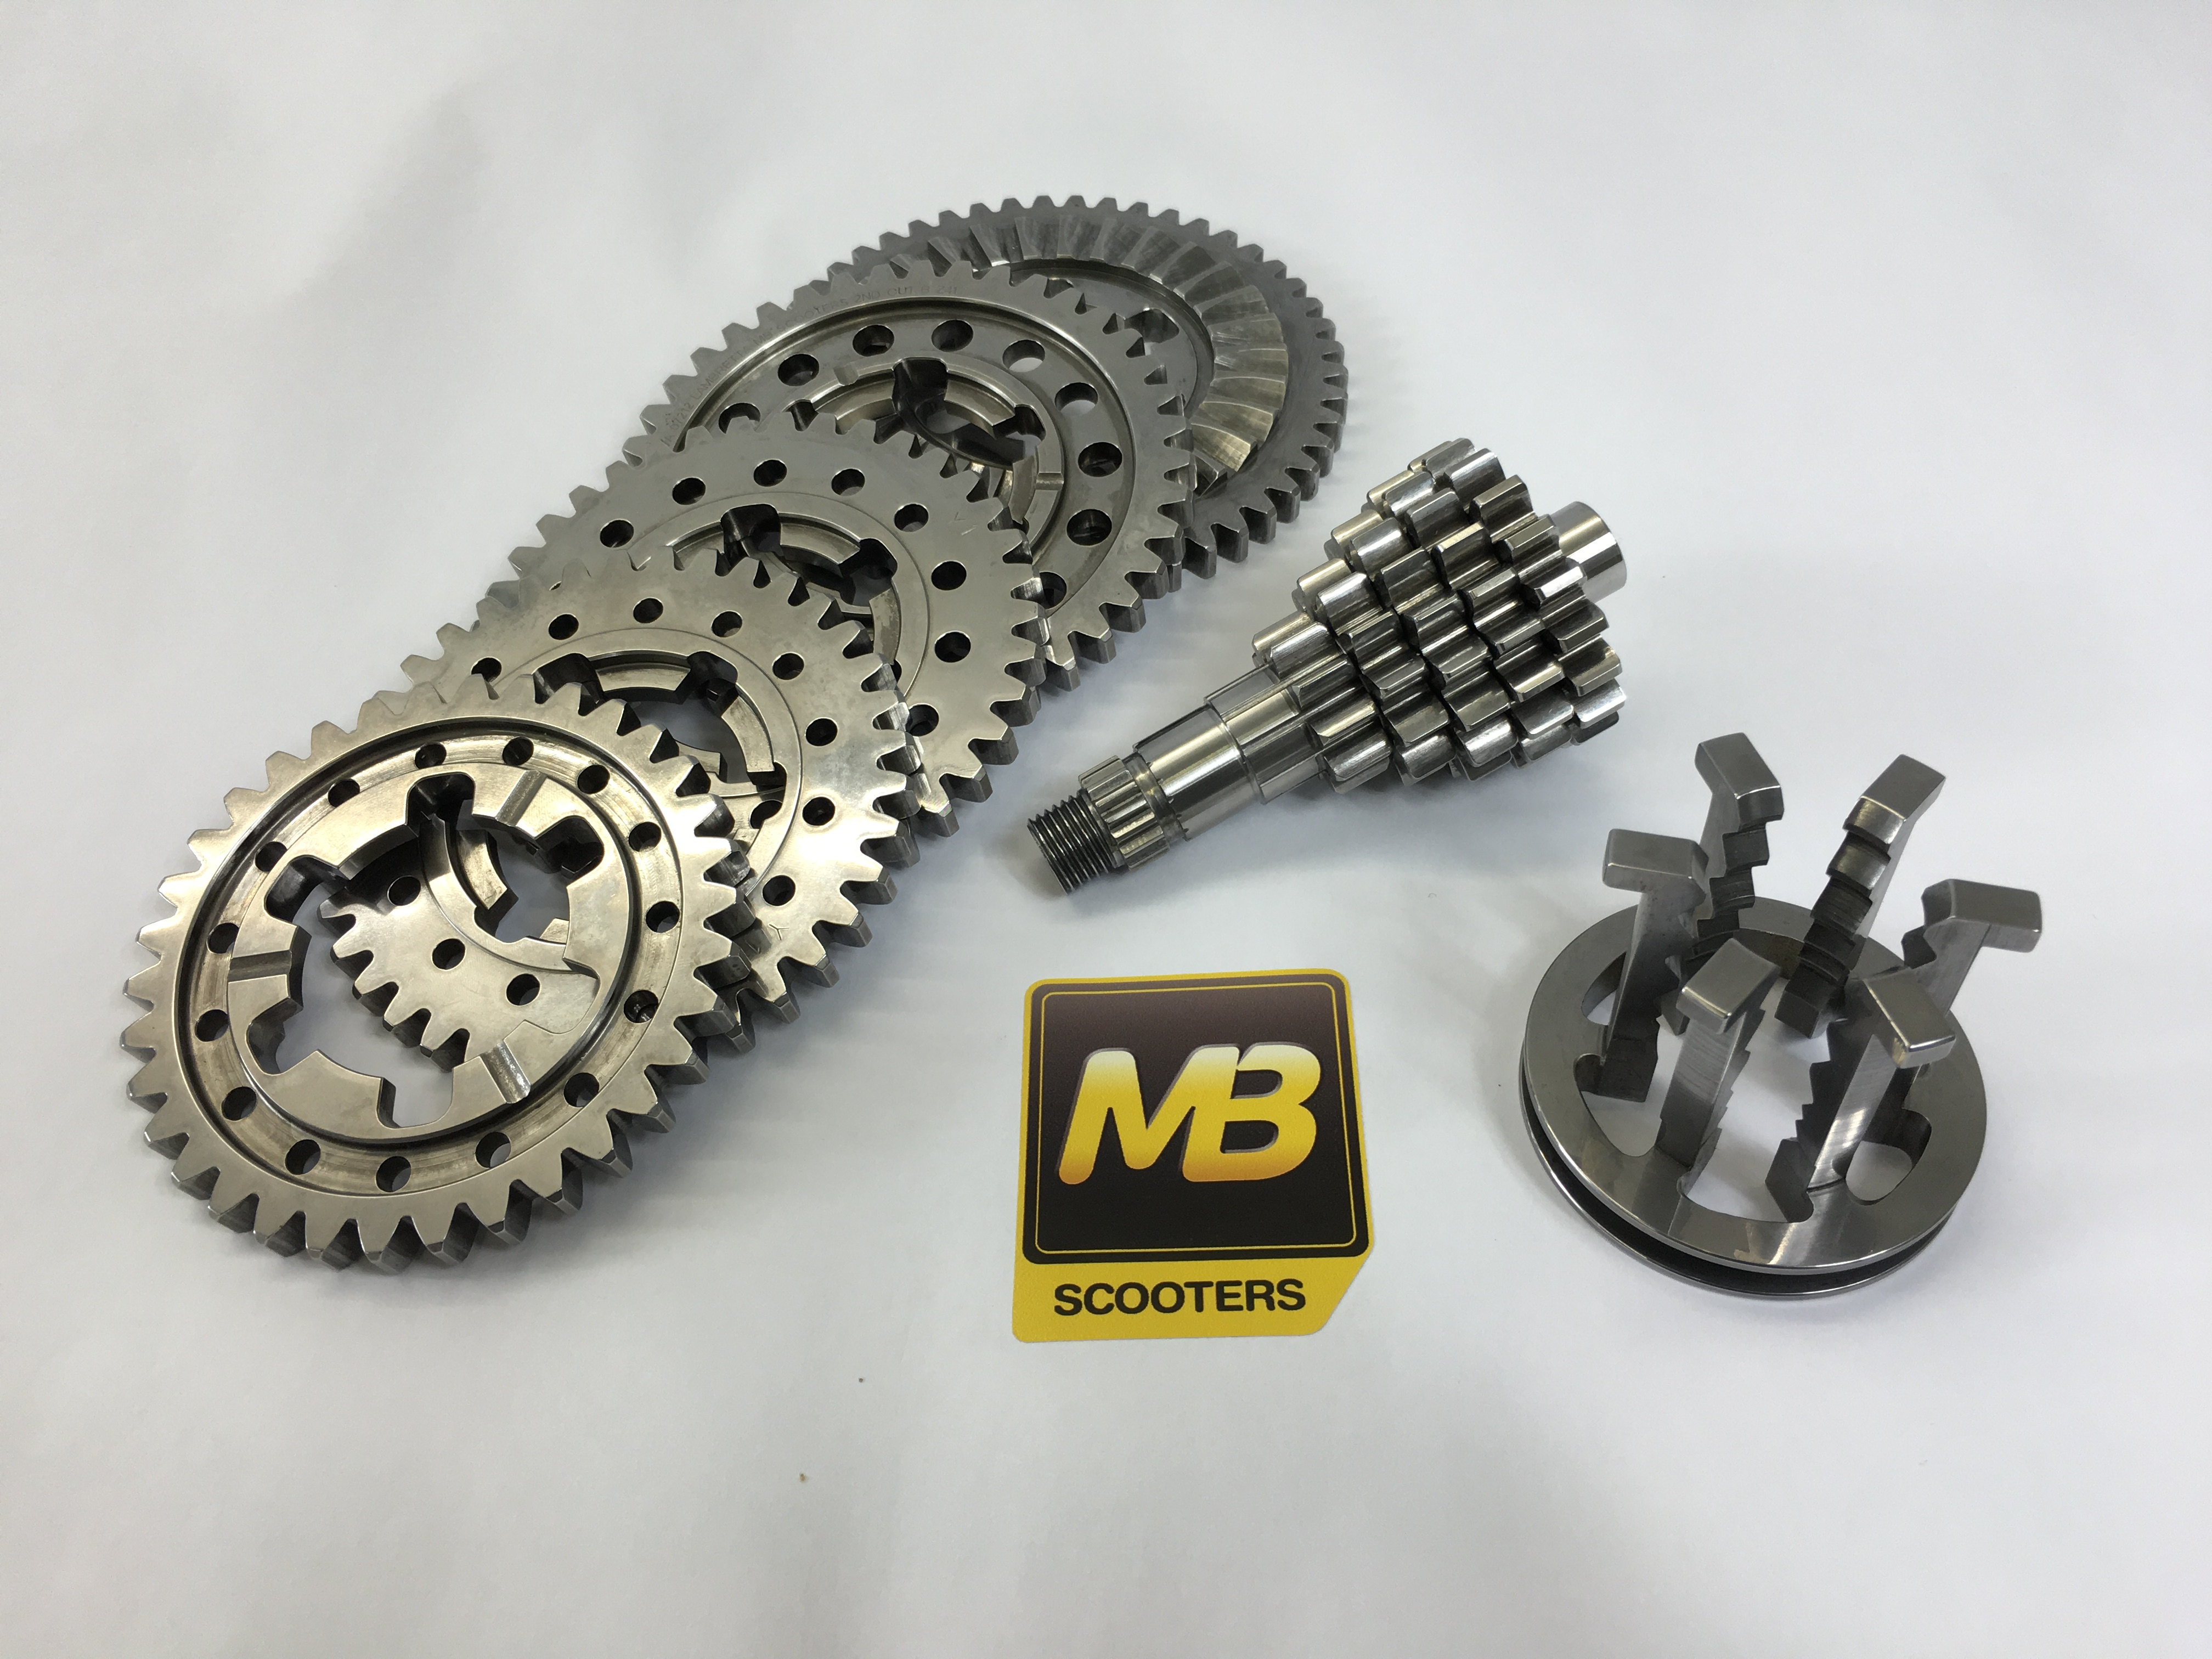 MB Scooters Ltd FITTING - MB Engine Gearbox